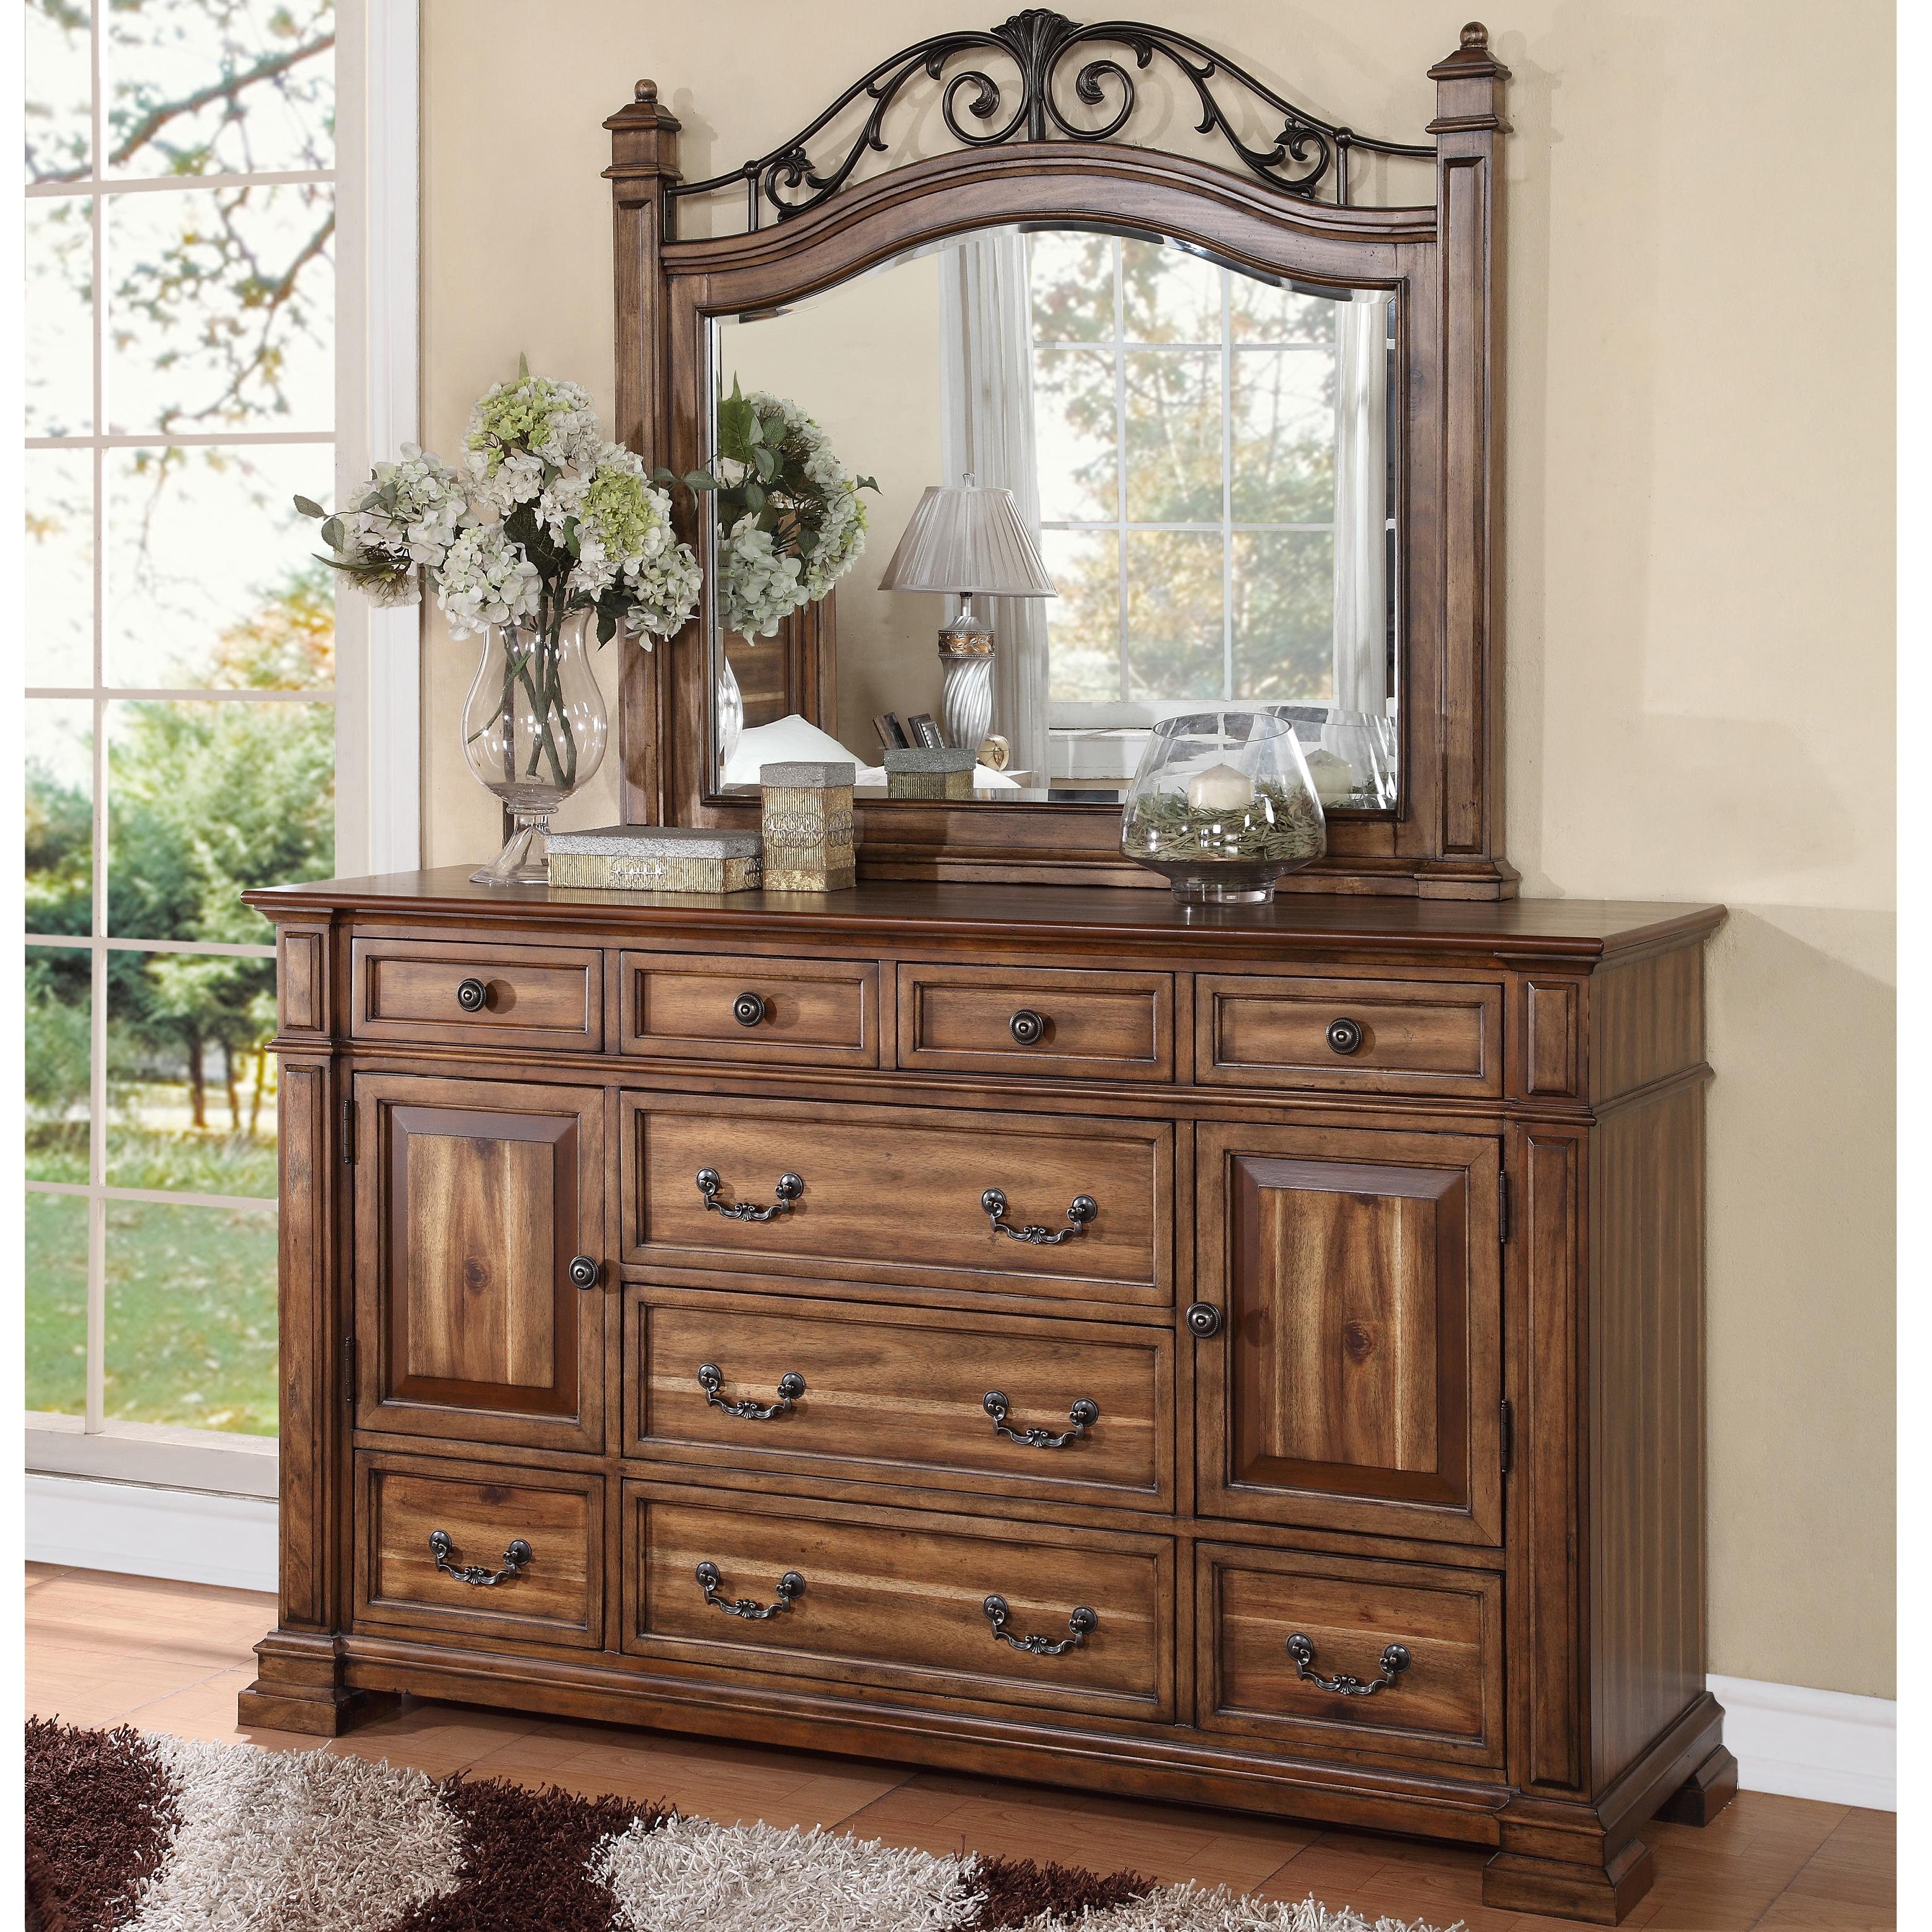 Legends Furniture Barclay Dresser and Mirror Set - Item Number: ZBCL-7013+ZBCL-7014